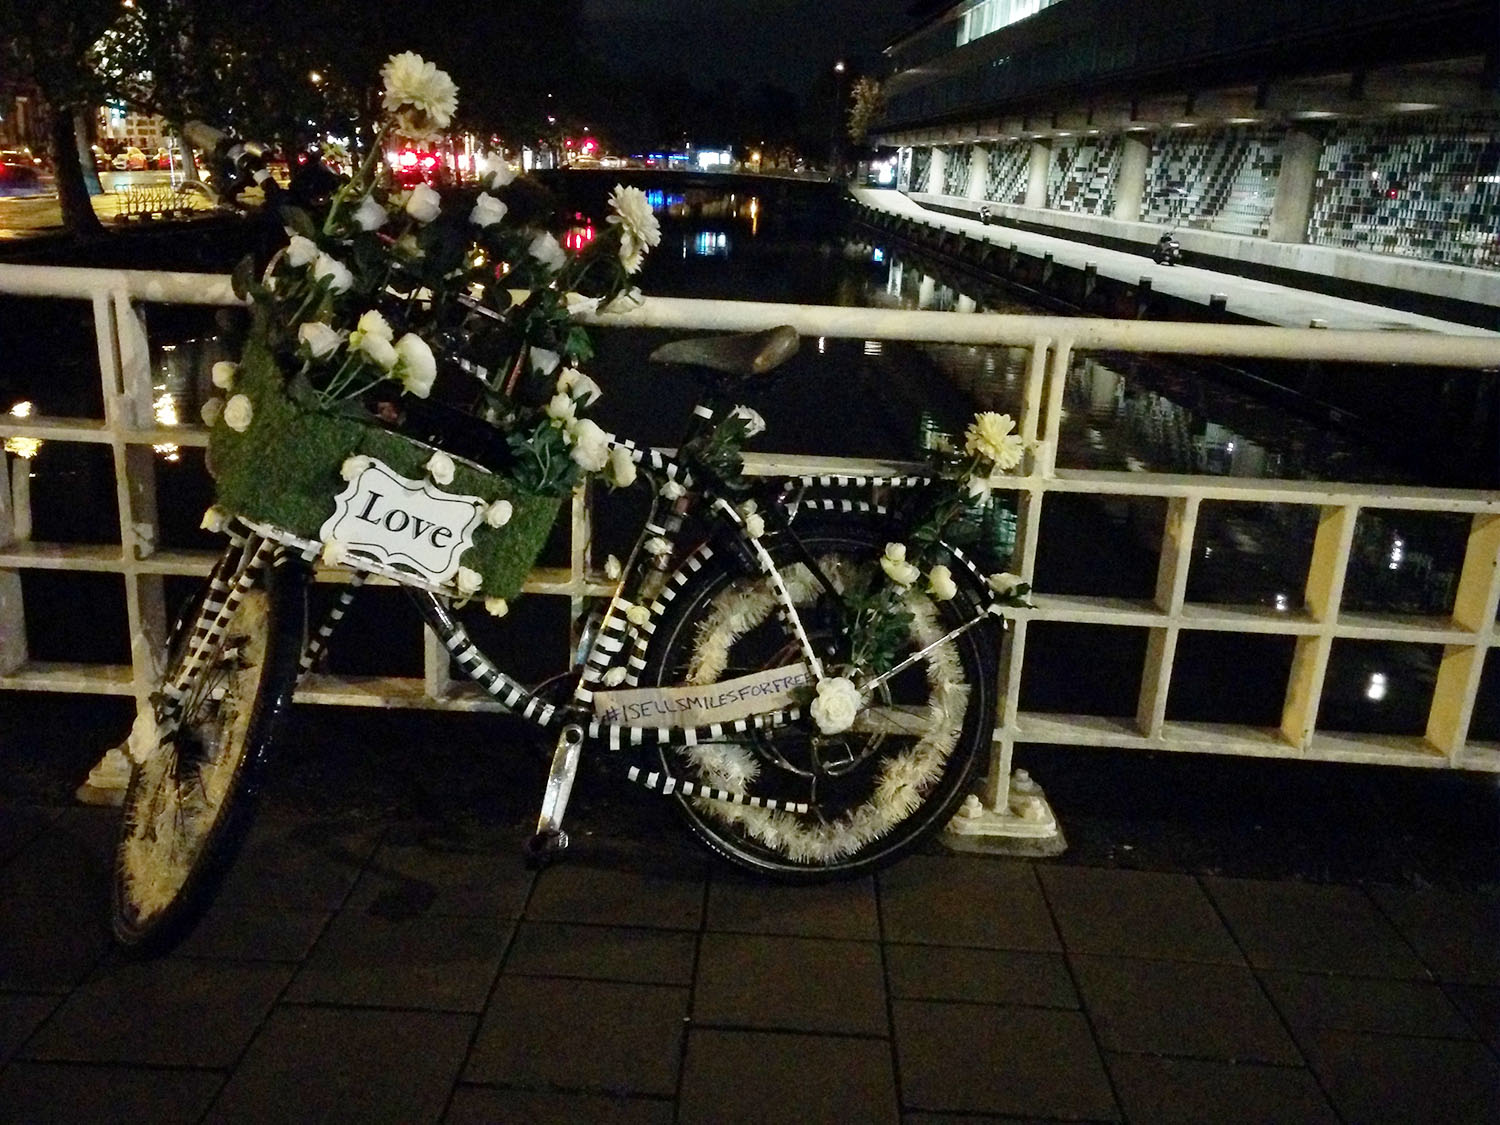 Amsterdam Love Bicycle,